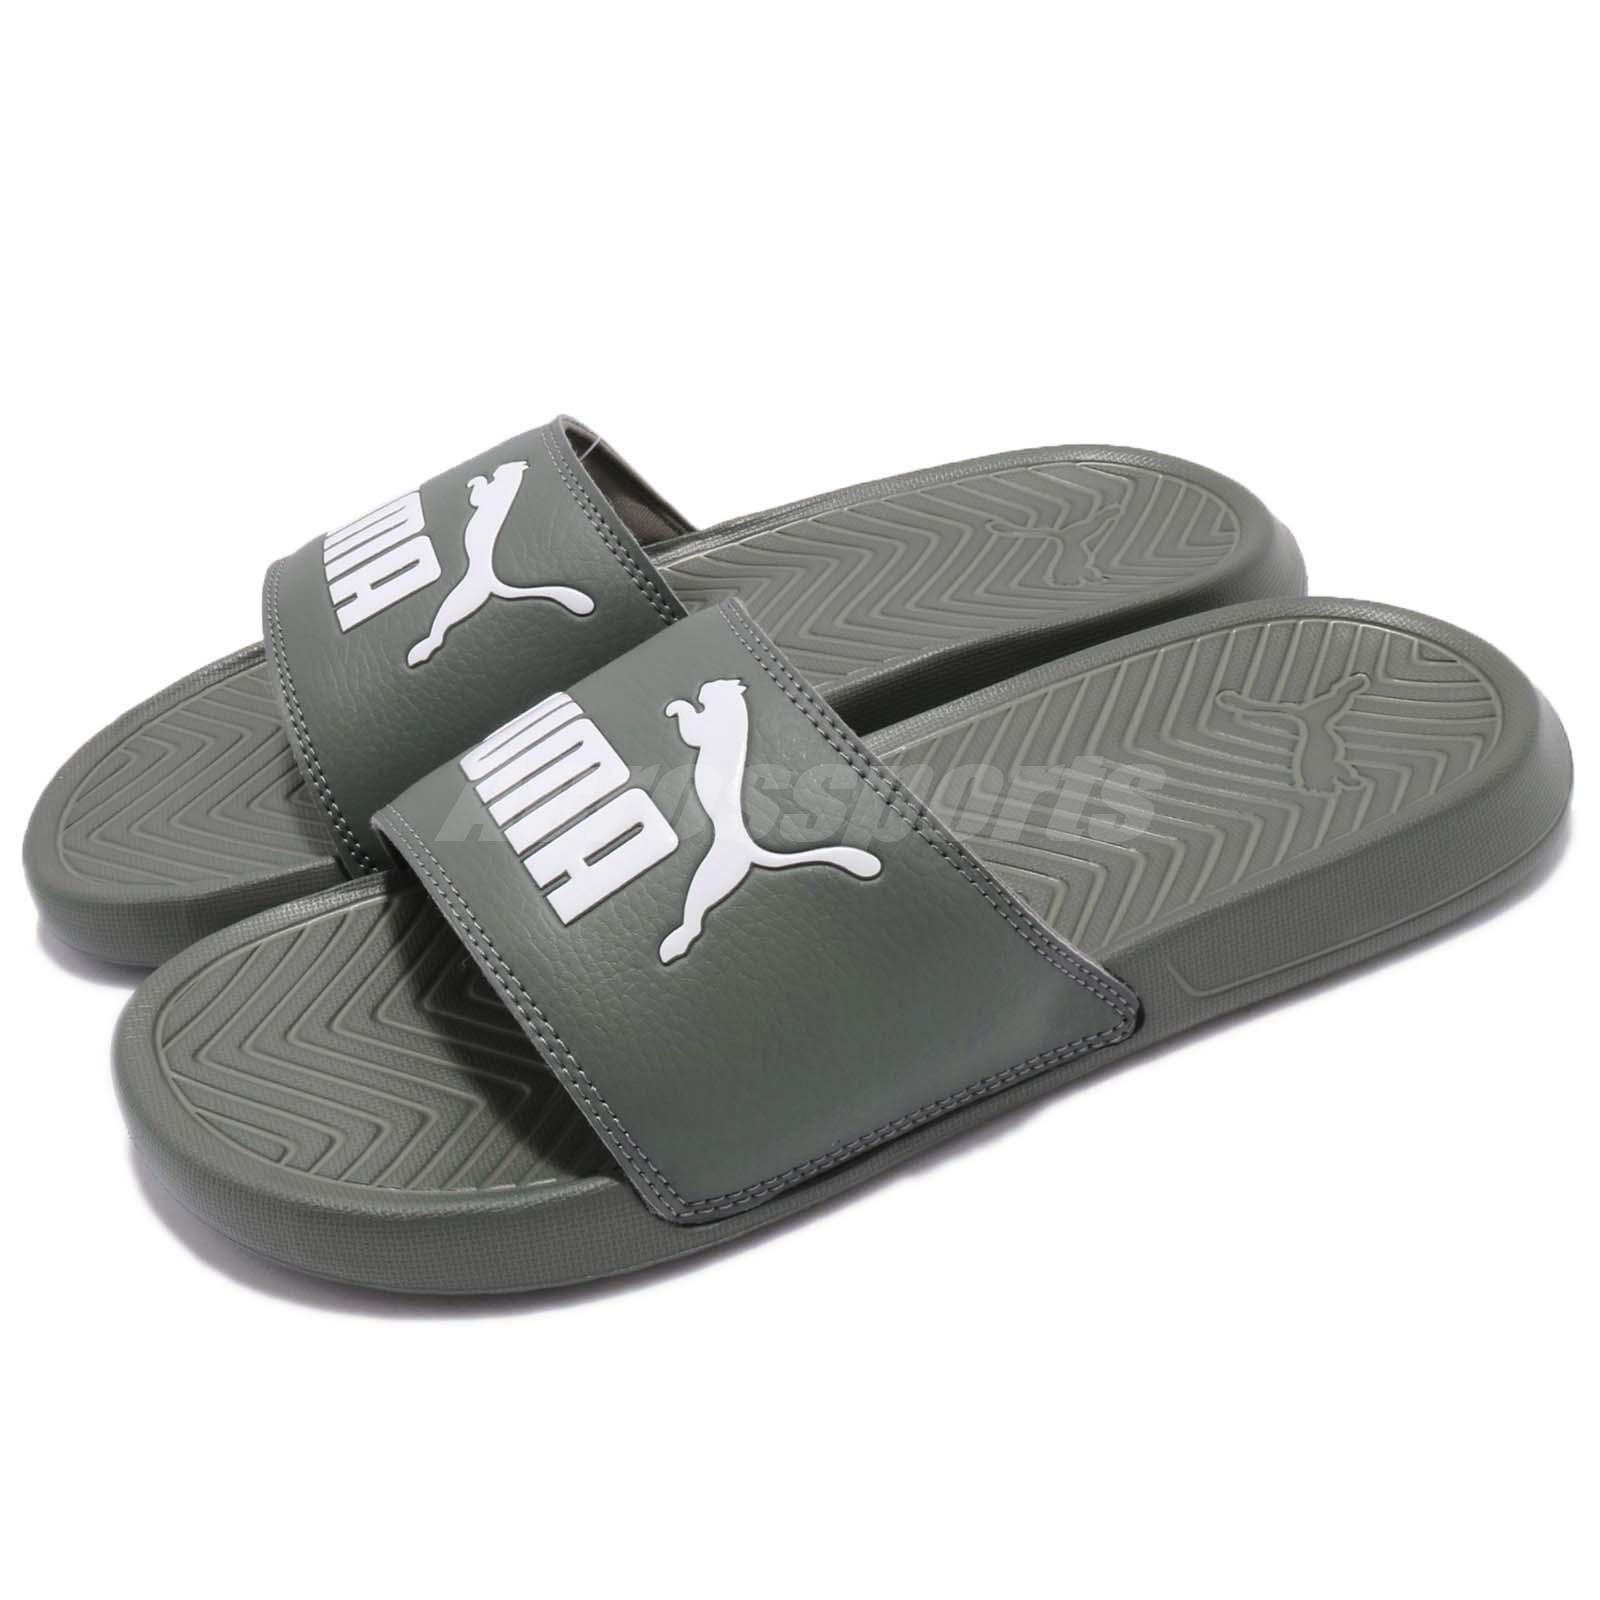 Selling - puma slippers for mens - OFF